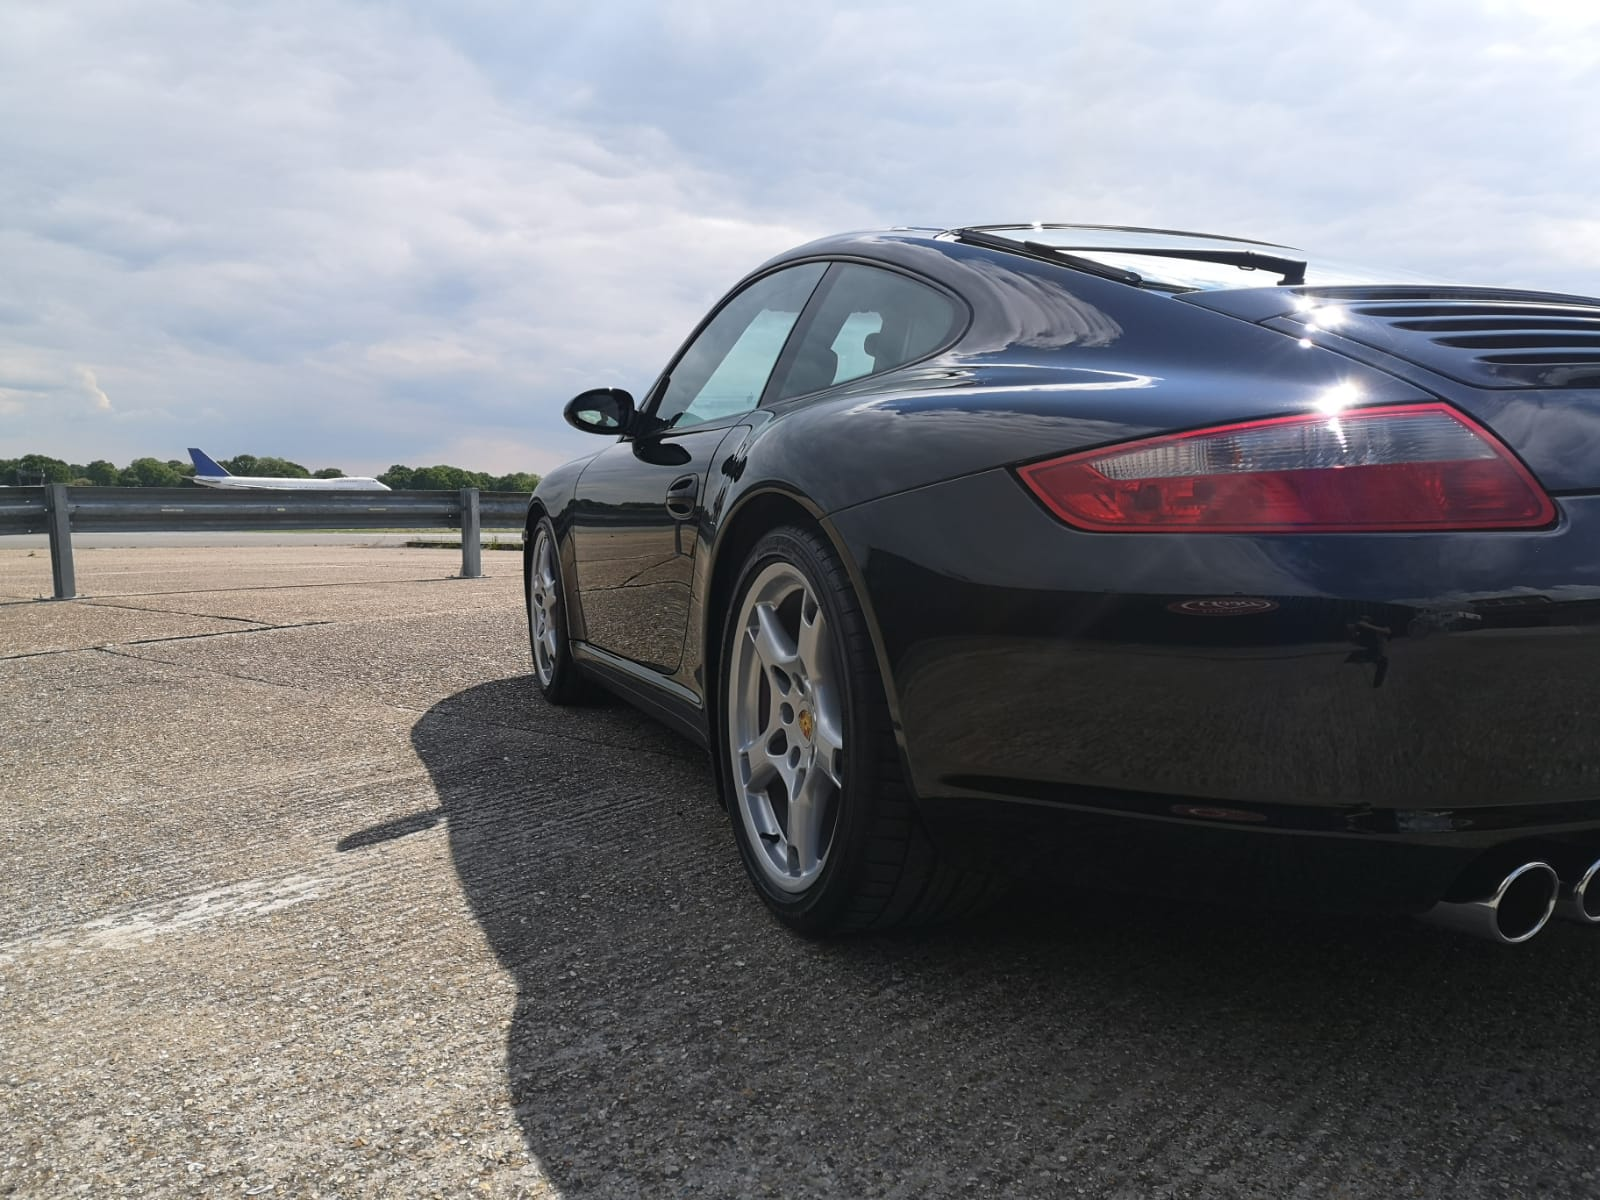 Porsche Carrera Paint Protection